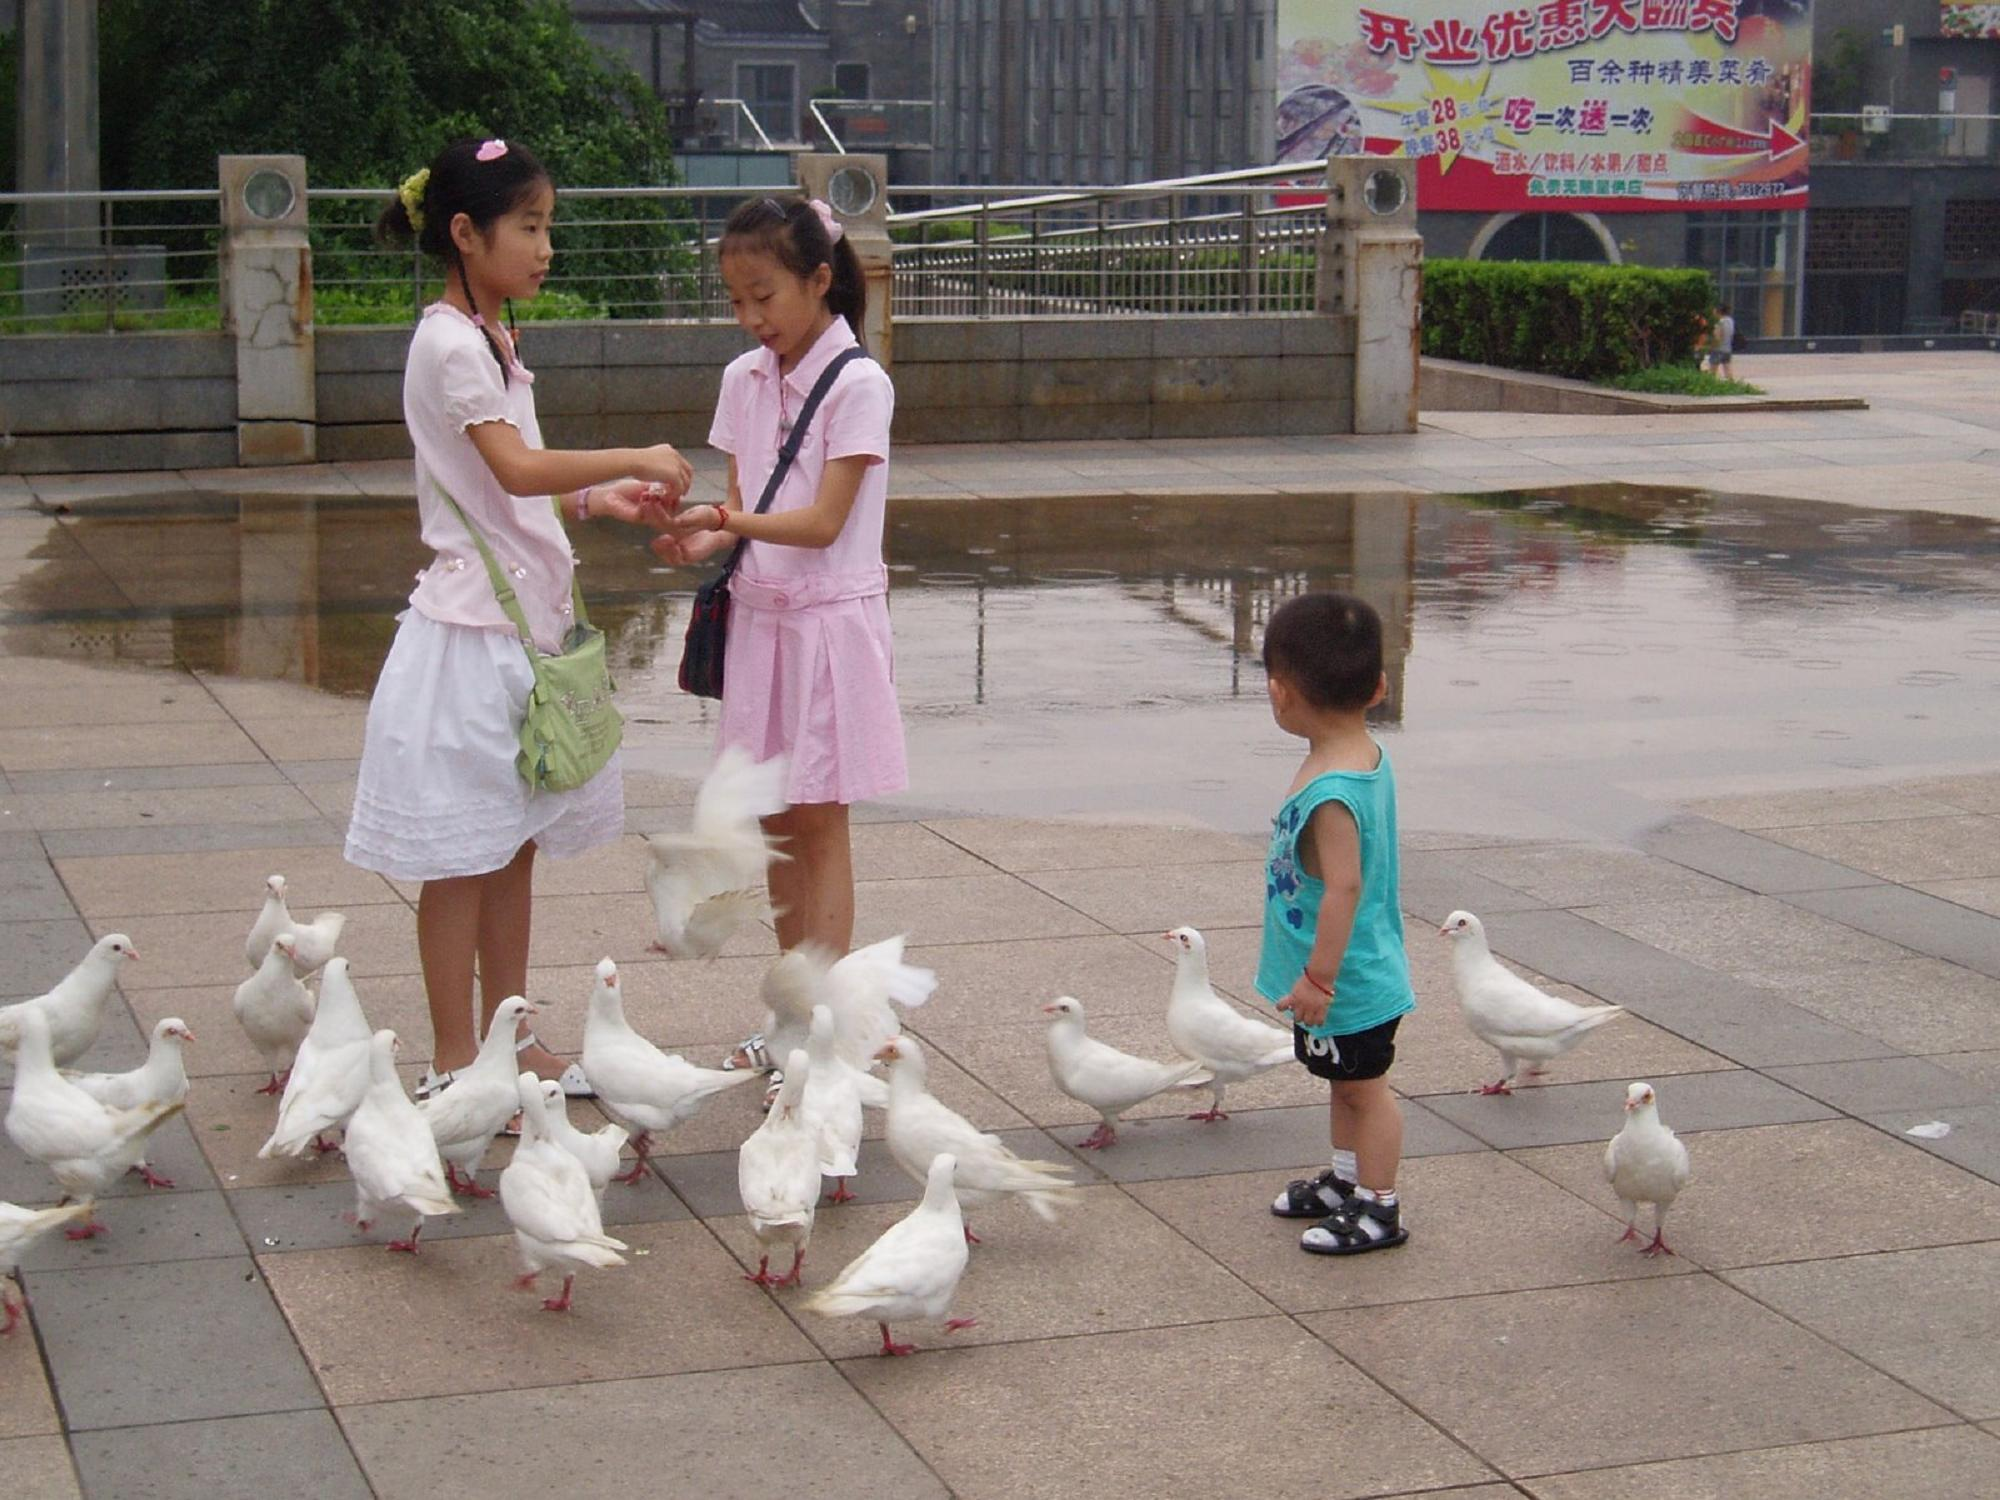 Children from sichuan province will holiday in the russian far east children from sichuan province will holiday in the russian far east voices from russia publicscrutiny Image collections